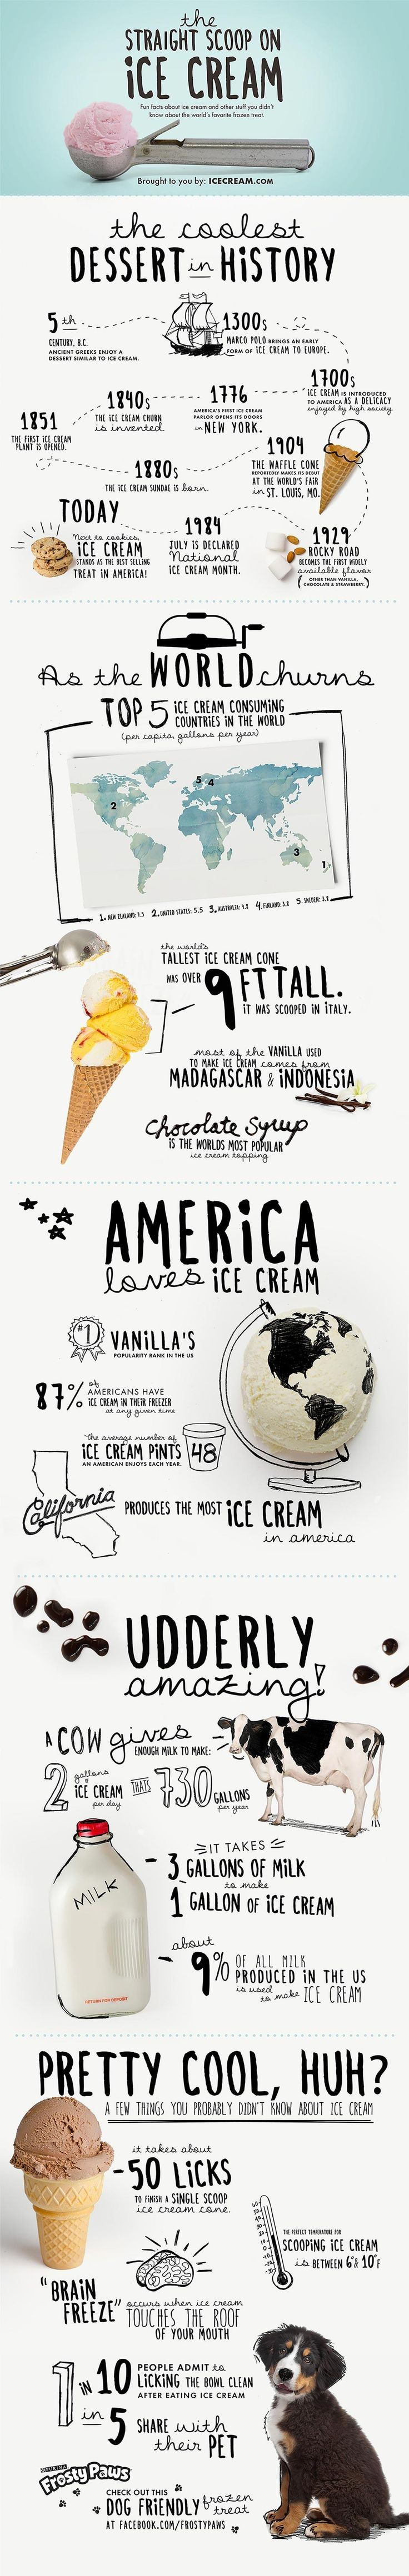 Here's the real scoop. Fun Facts about Ice Cream #